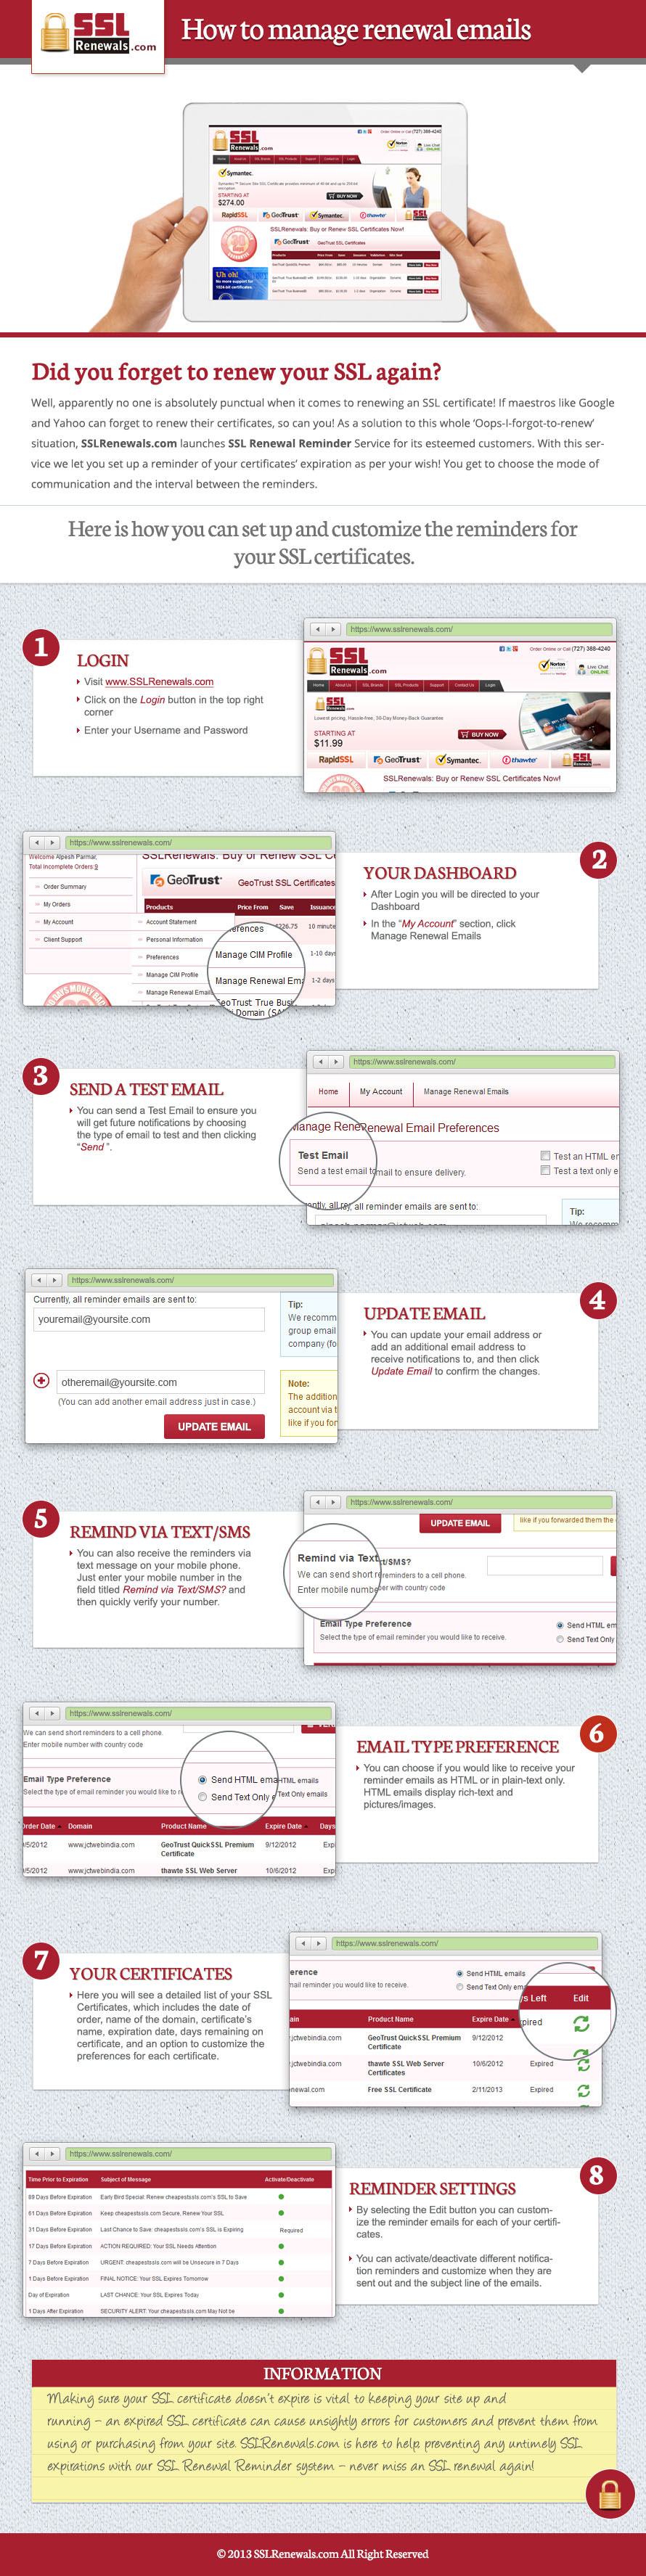 How to manage renewal emails infographic